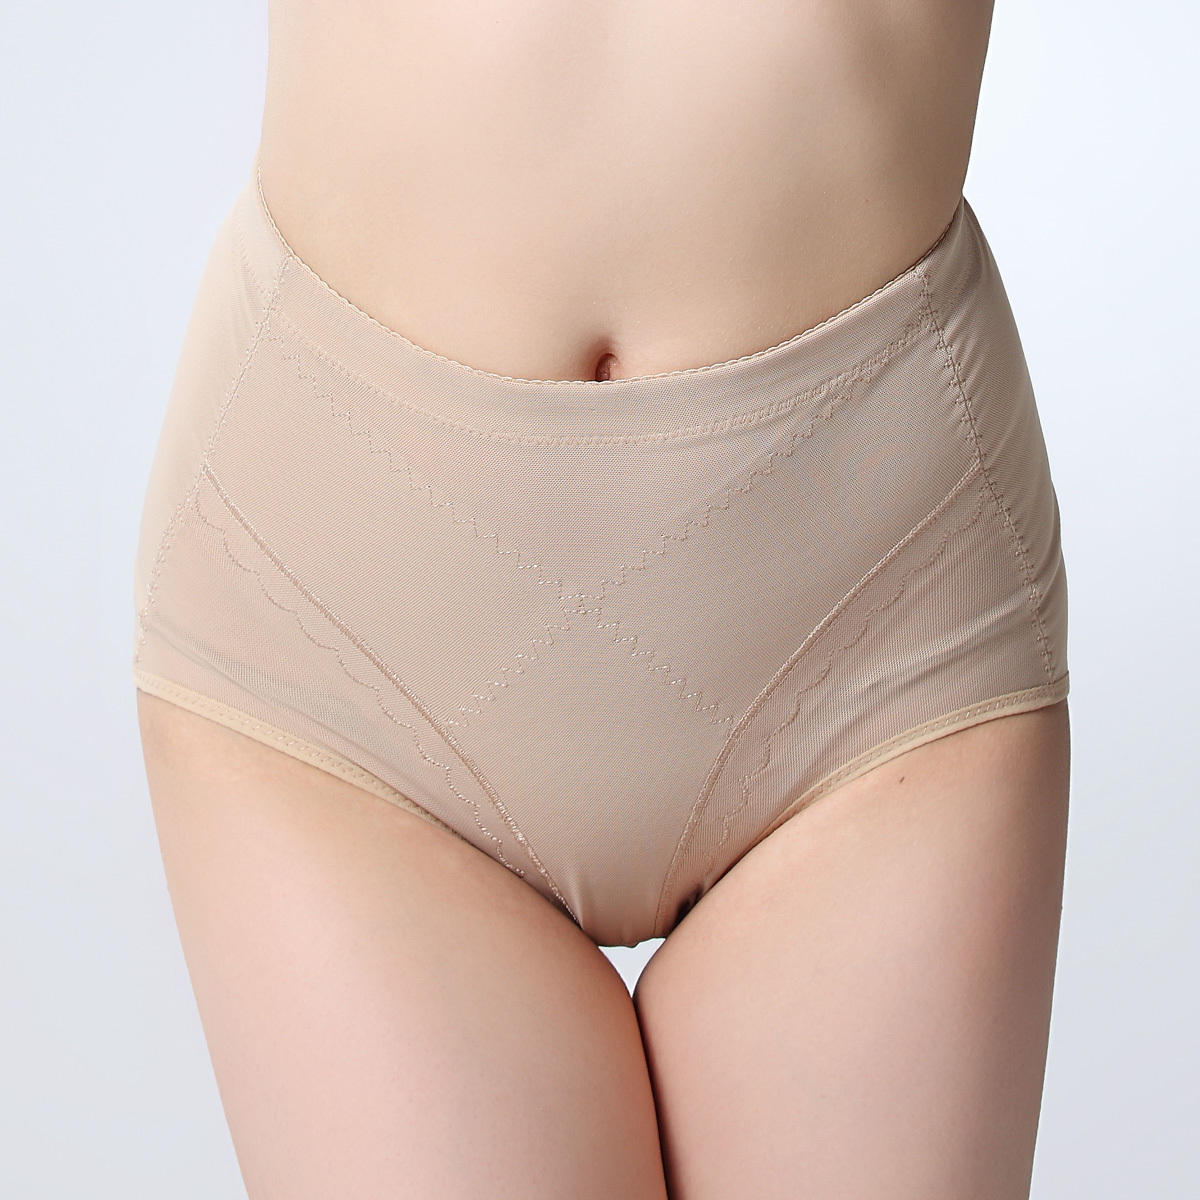 Realwill high waist abdomen drawing butt-lifting body shaping pants 8031